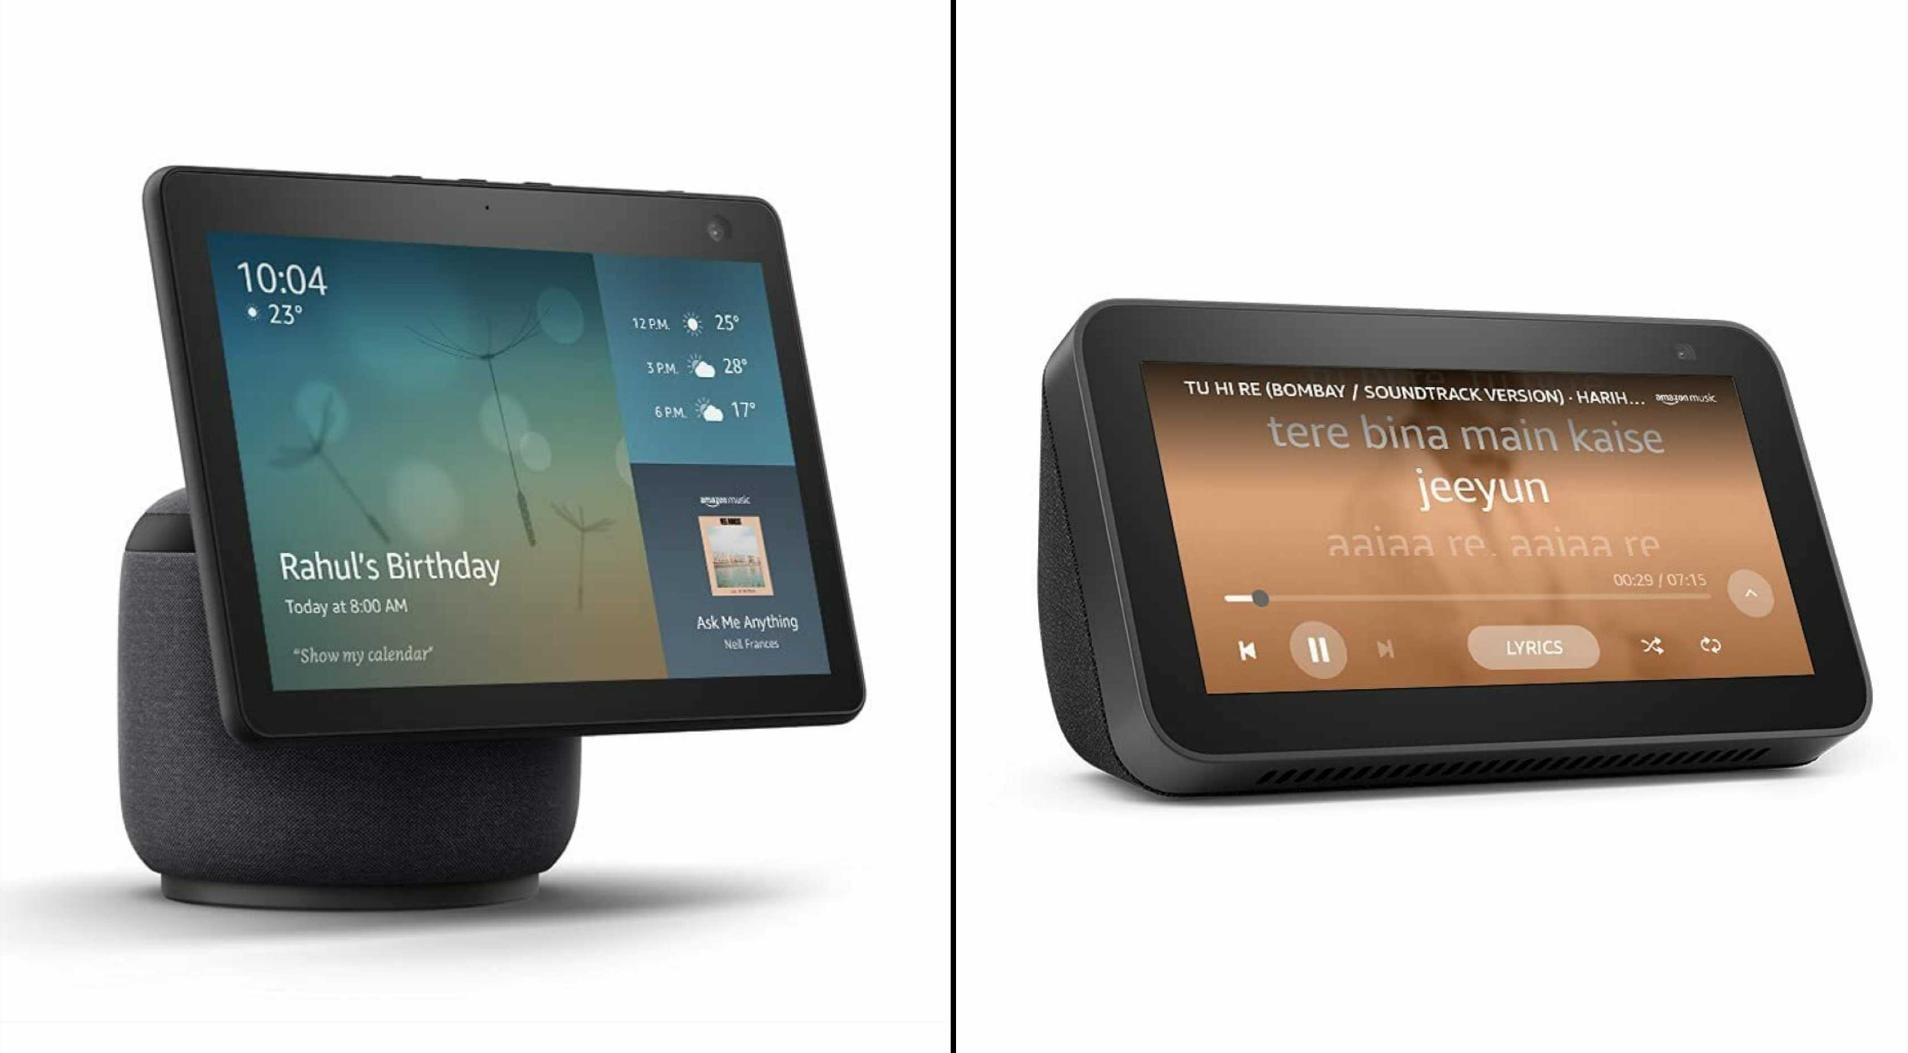 The Amazon Echo Show 10 (left) costs Rs 24,999, while the Echo Show 5 costs Rs 6,999 for a limited period. Image: Amazon